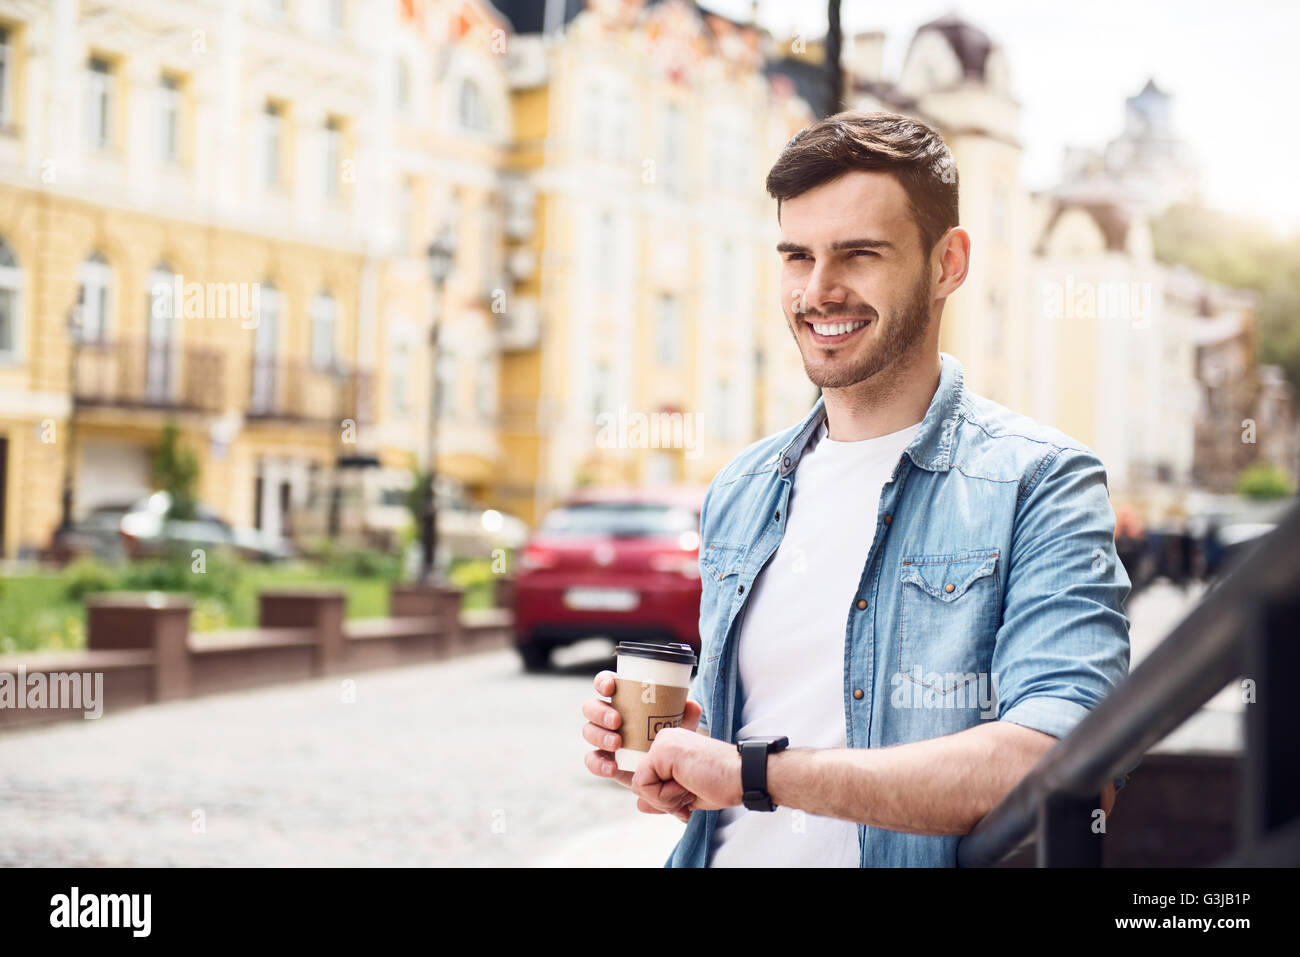 Positive man leaning on the handrail - Stock Image